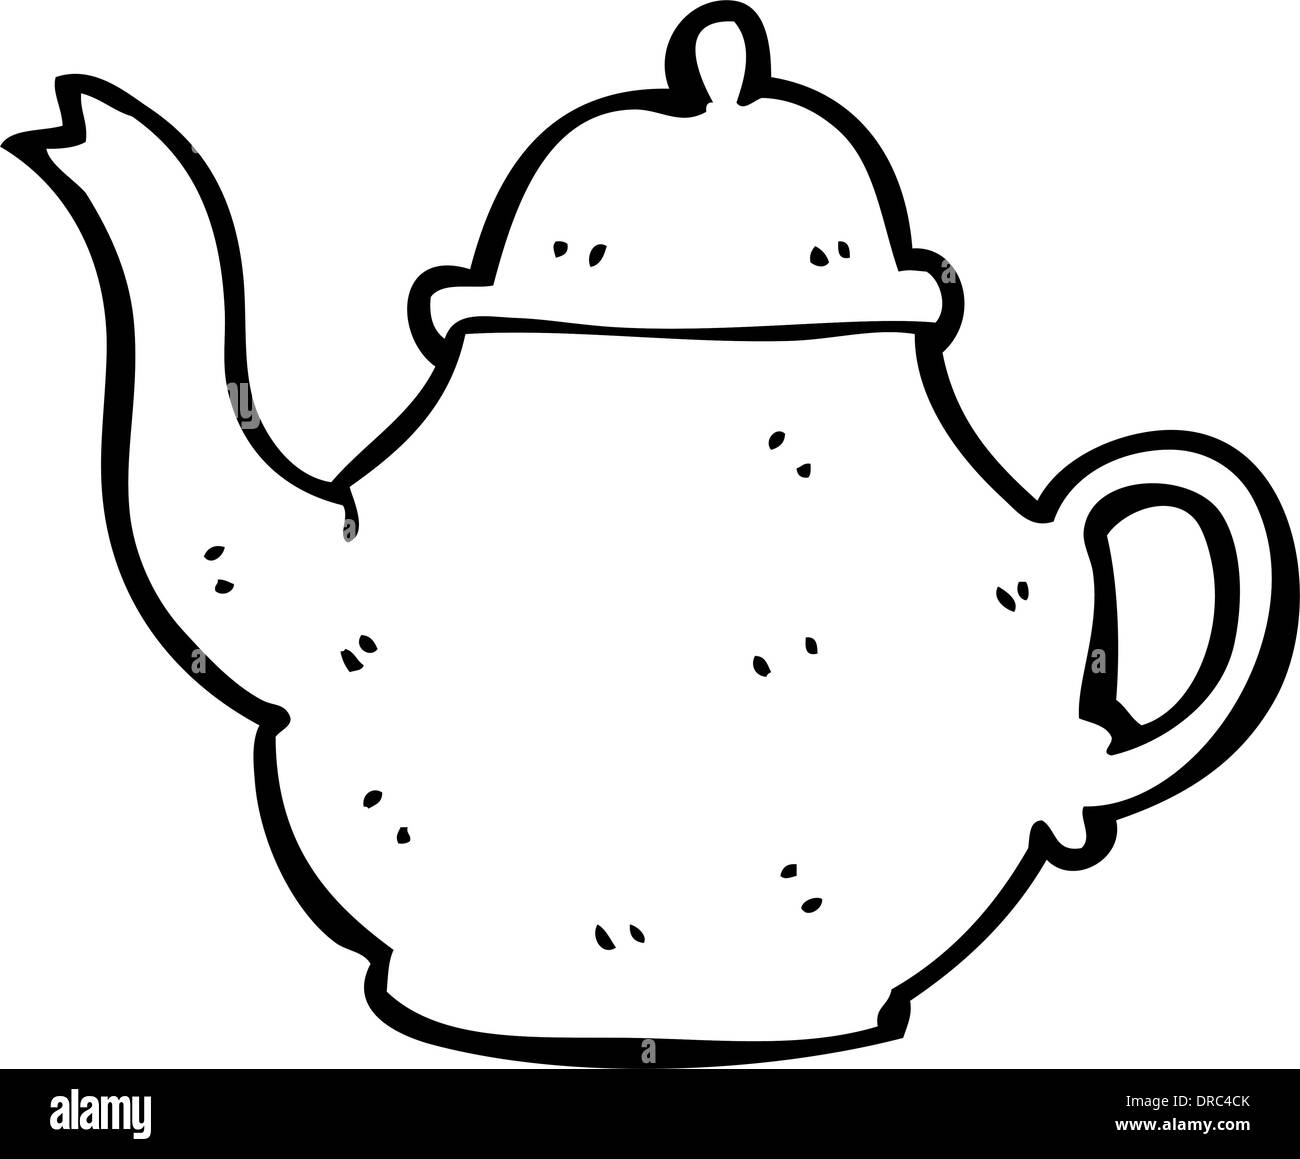 Cartoon Teapot Stock Vector Art Illustration Vector Image